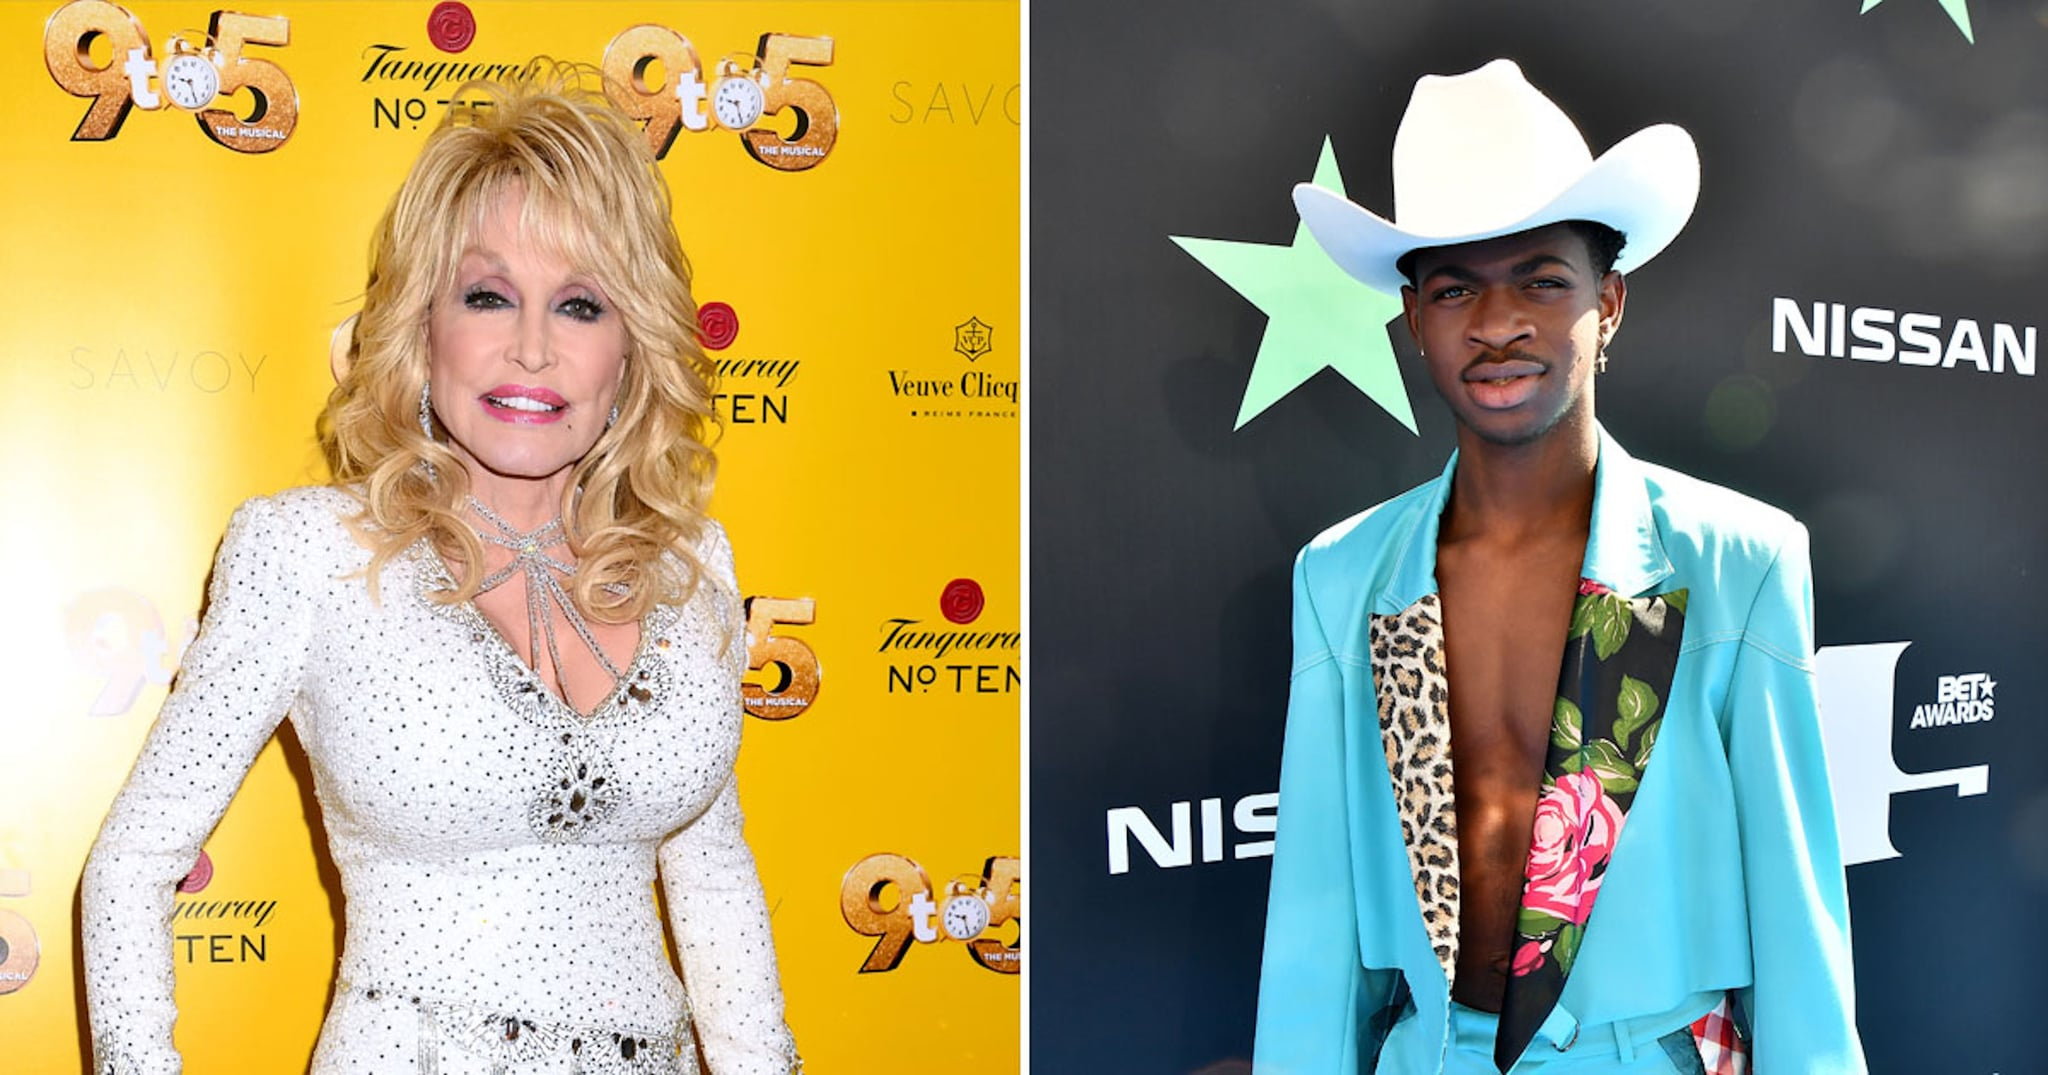 Dolly Parton Responds to Lil Nas X on Old Town Road Remix | POPSUGAR Entertainment UK